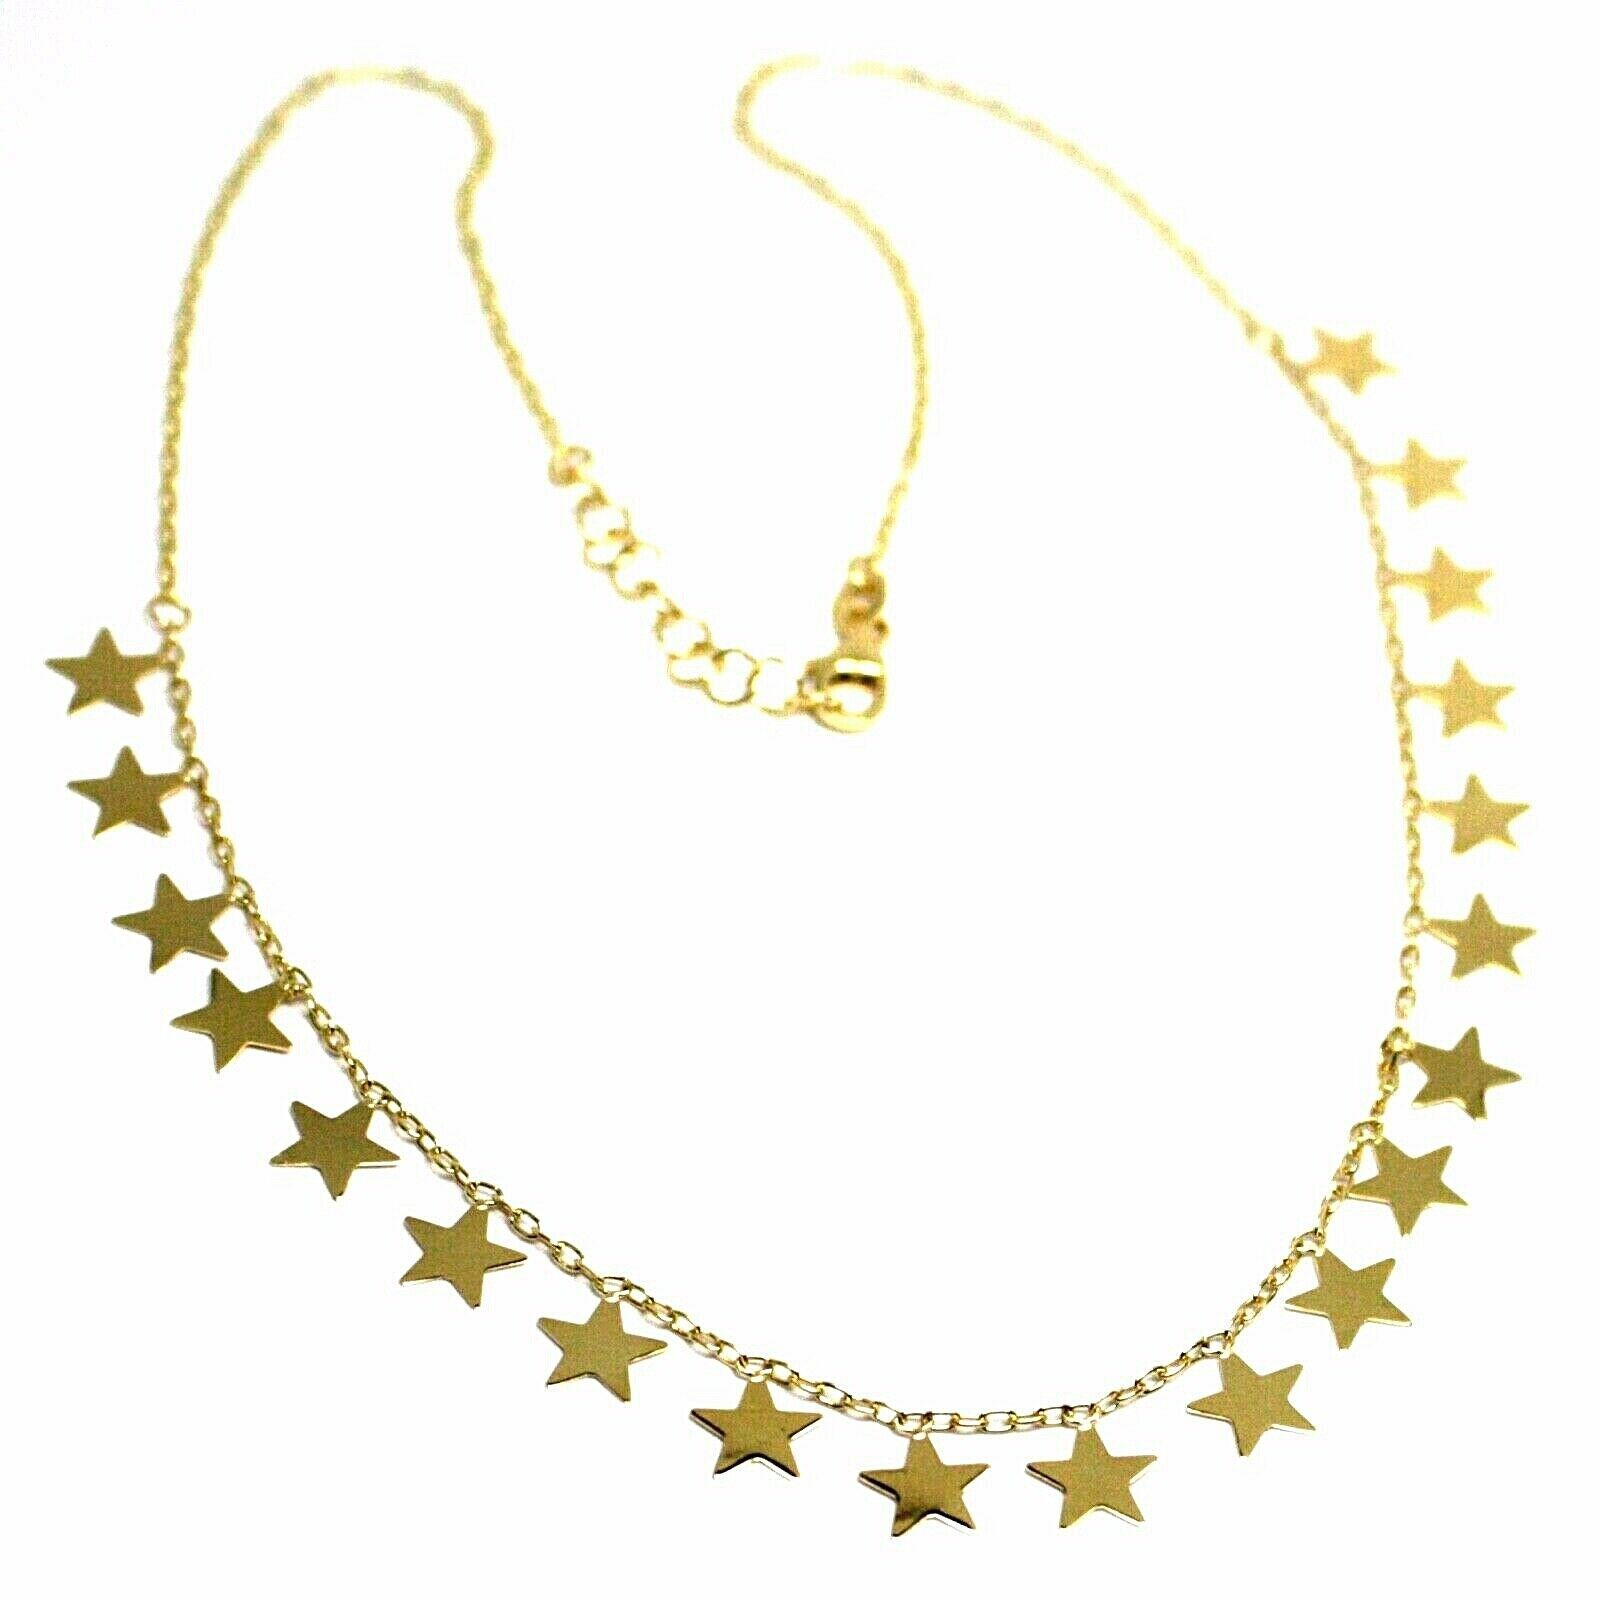 SOLID 18K YELLOW GOLD NECKLACE WITH 8mm FLAT PENDANTS STARS, ROLO OVAL CHAIN 18""